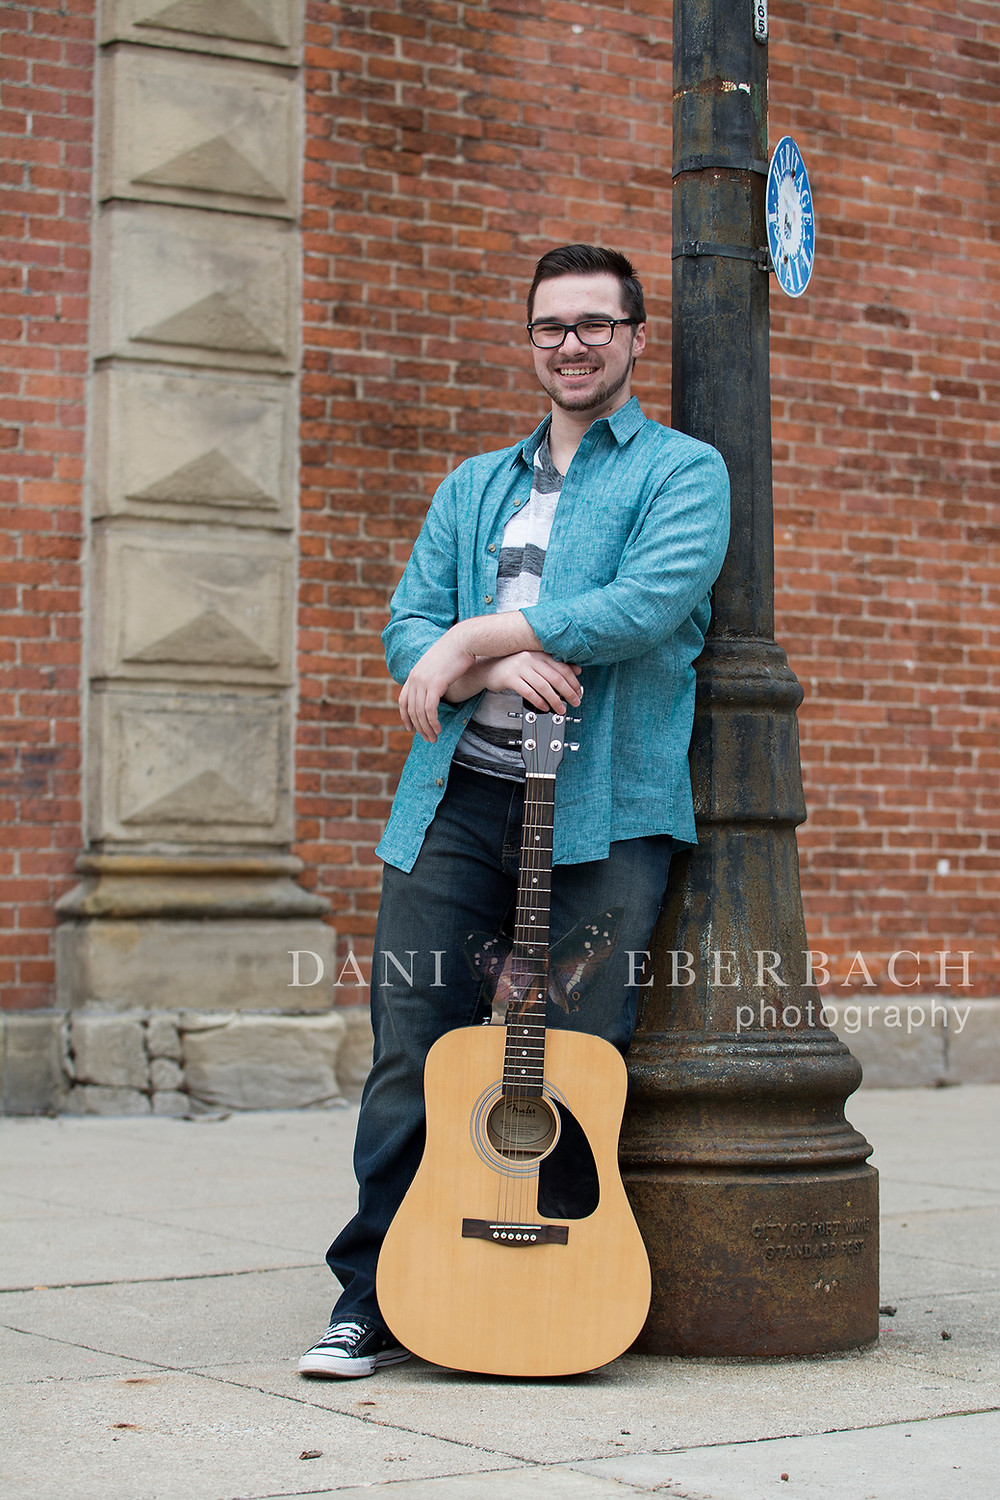 Downtown senior pictures of guitar player